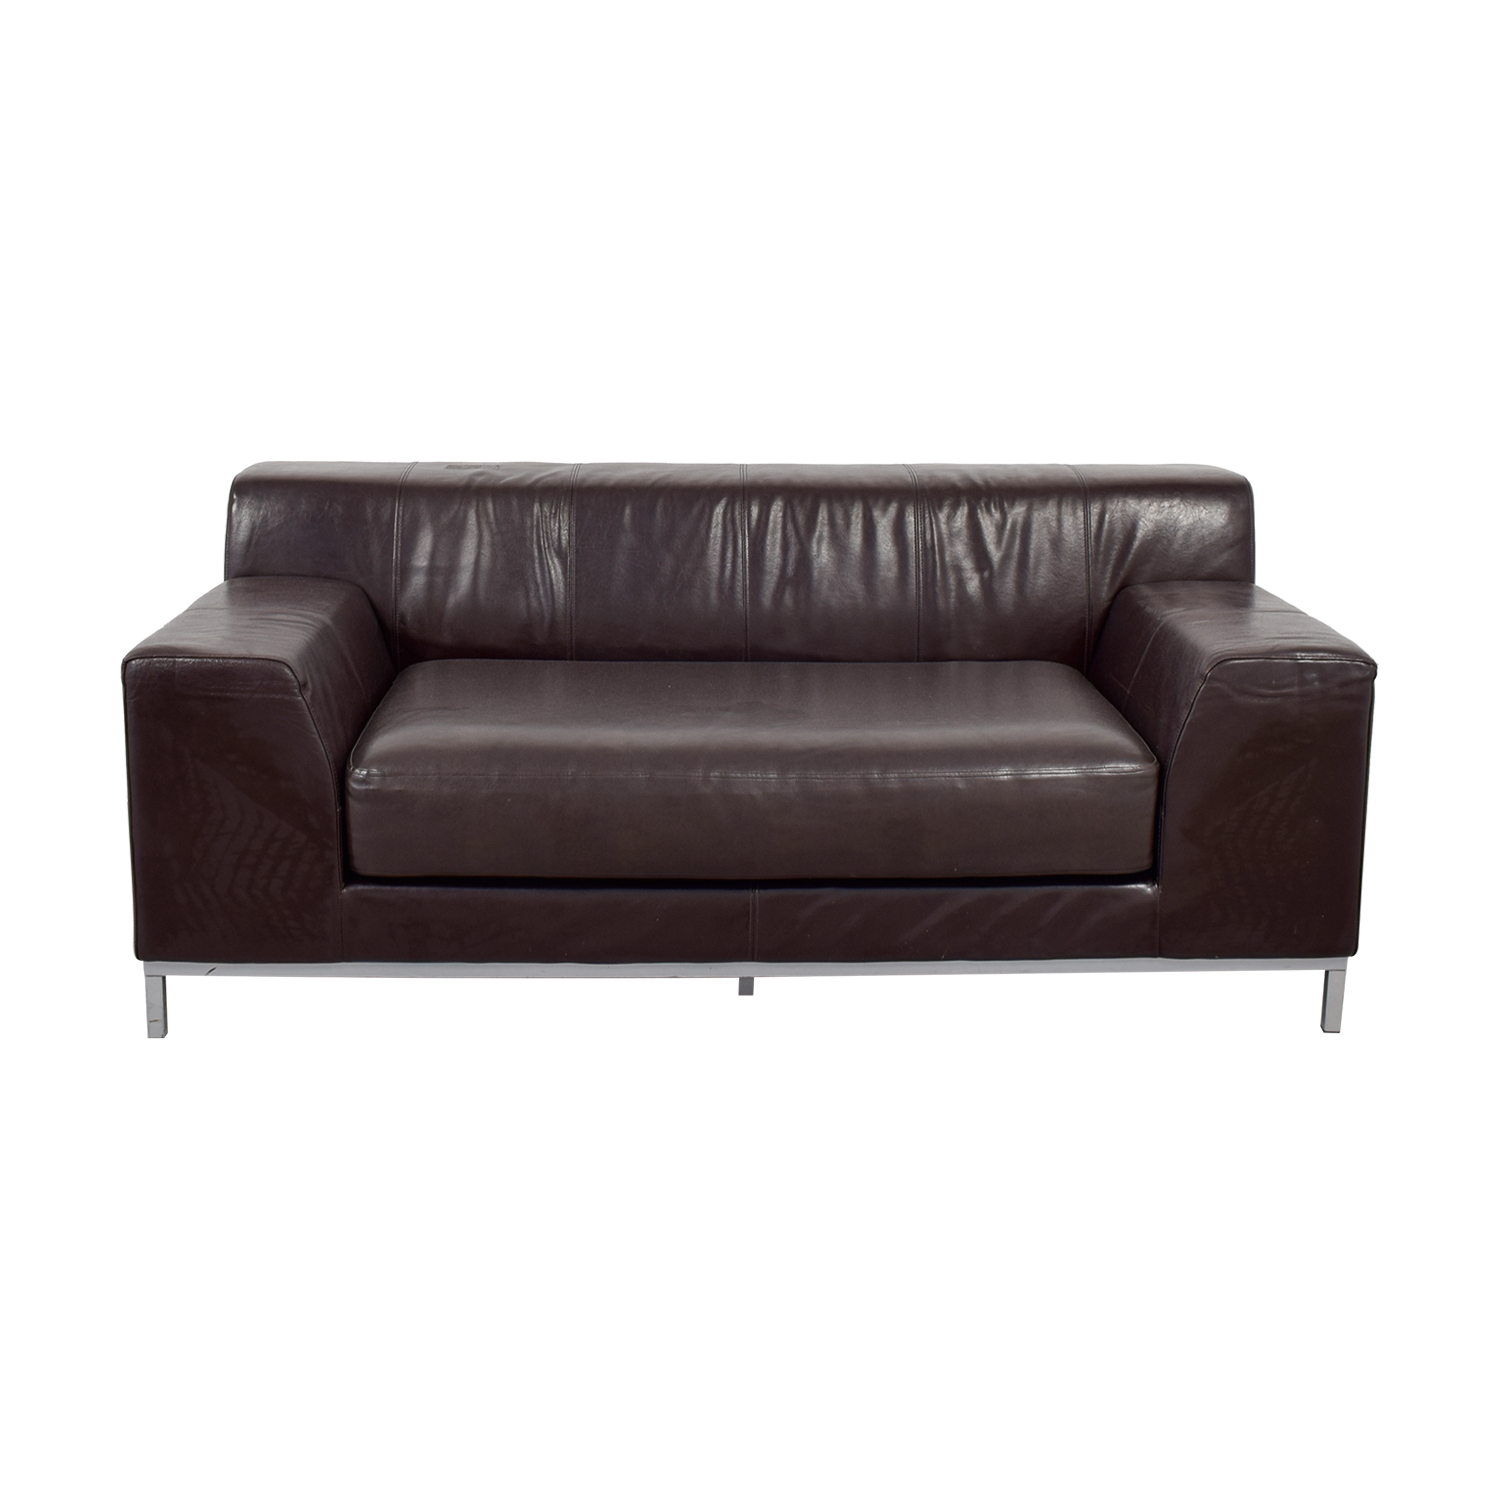 Incredible 90 Off Ikea Ikea Kramfors Brown Leather Love Seat Sofas Download Free Architecture Designs Scobabritishbridgeorg